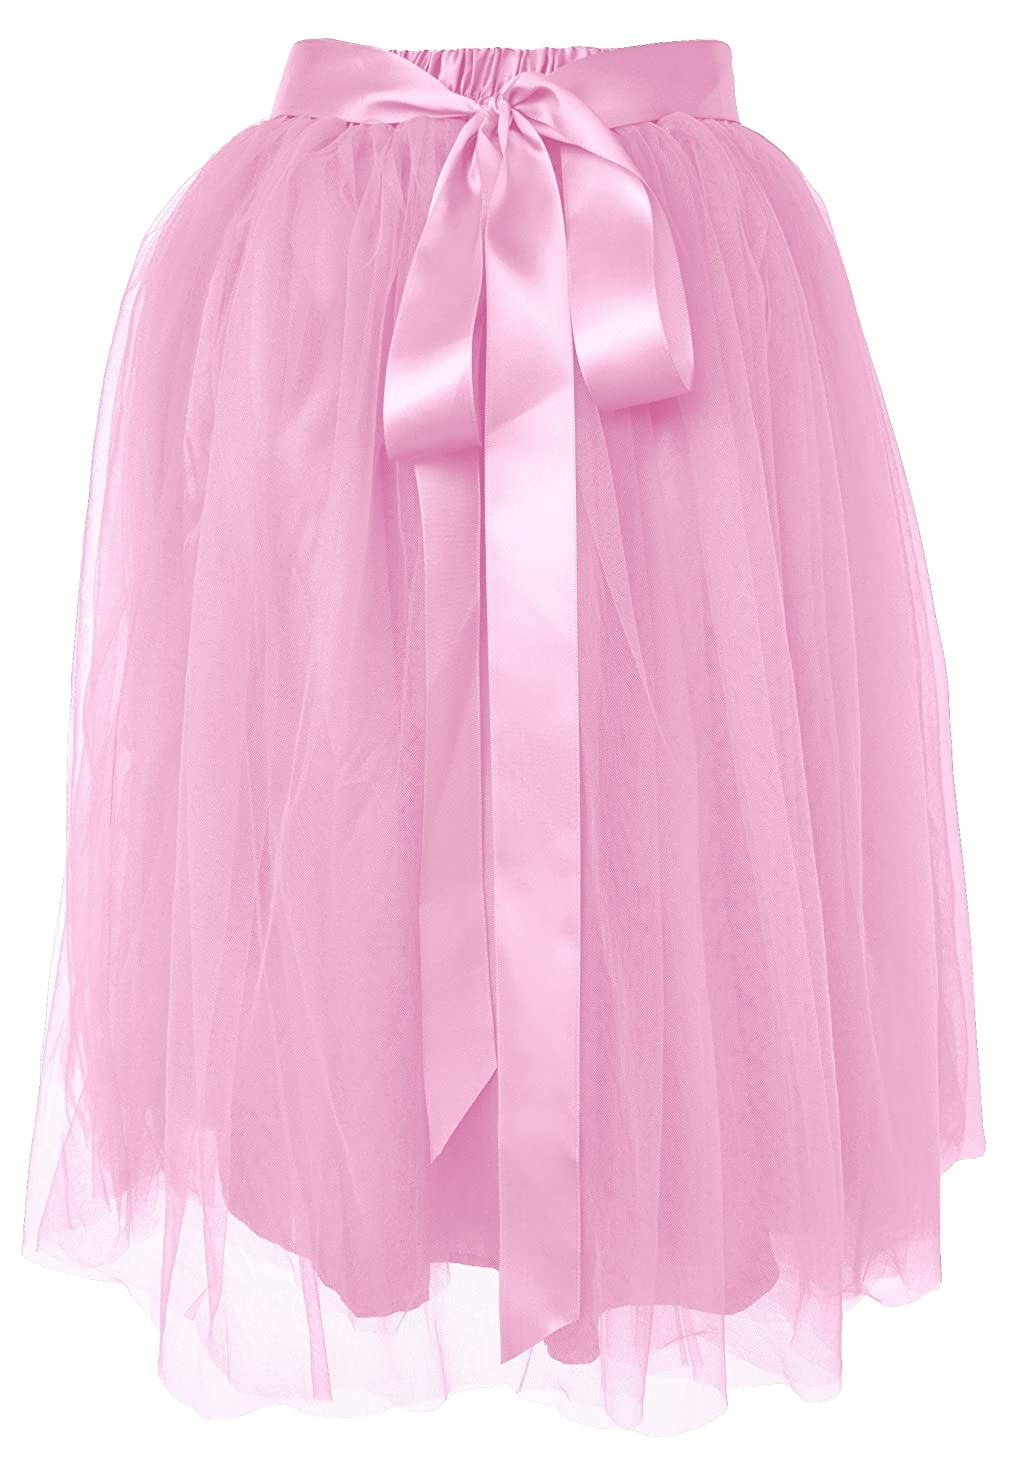 Dancina Girls Knee Length Tutu A Line Layered Tulle Skirt Ages 2-12